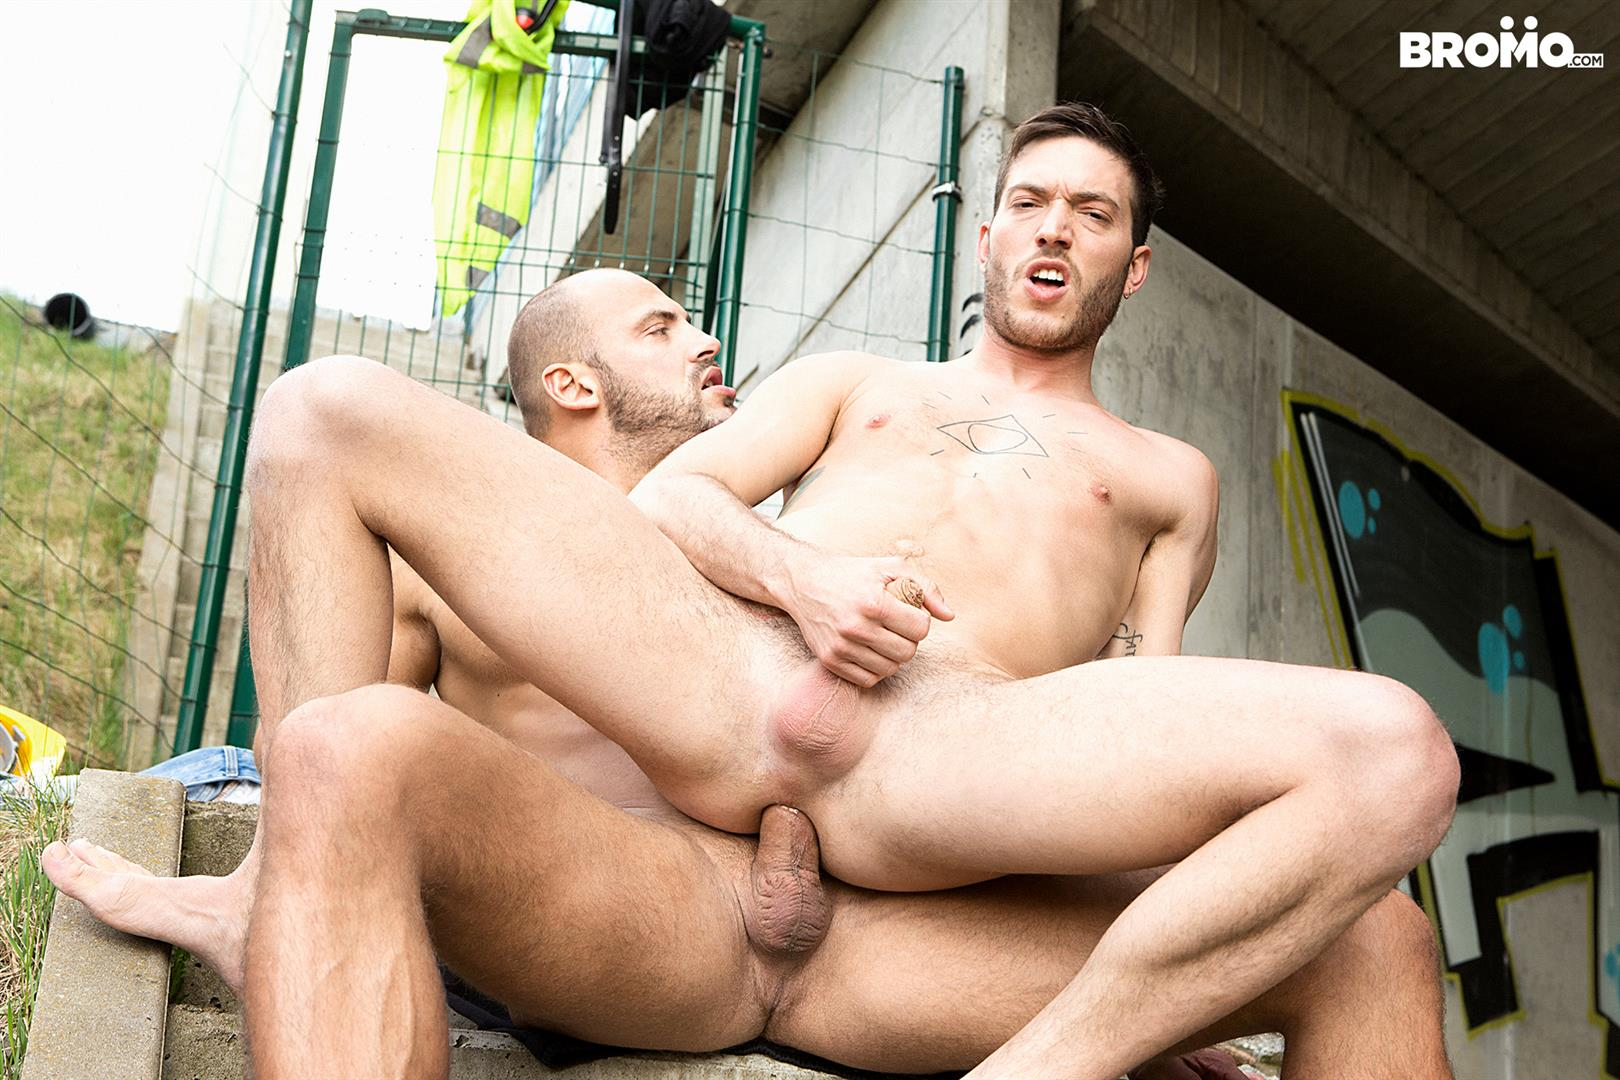 Bromo-Rico-Fatale-and-Tomm-Construction-Worker-Bareback-Sex-Video-17 Getting Bareback Fucked By A Construction Worker With A Big Uncut Cock